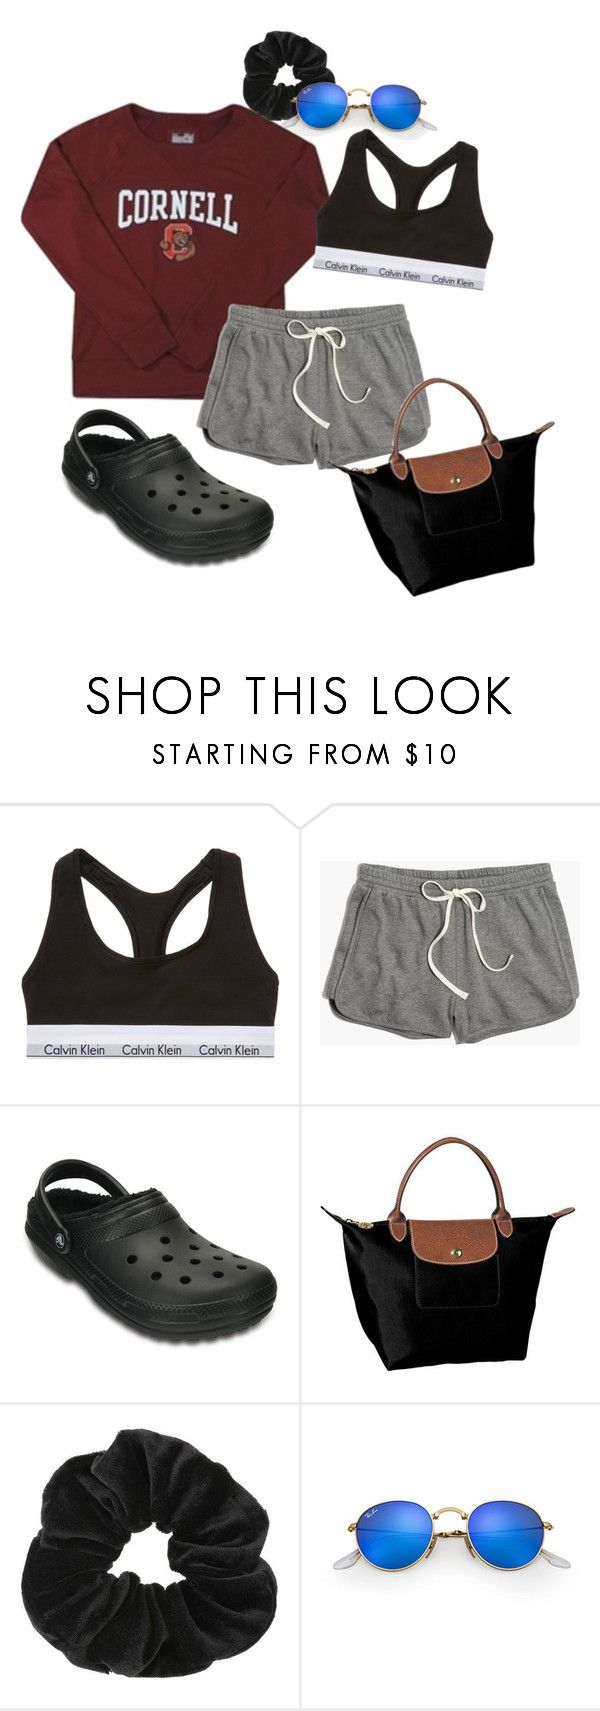 """""""cornell libe dayz"""" by emmagc on Polyvore featuring Calvin Klein Underwear, Madewell, Crocs, Longchamp, Miss Selfridge and Ray-Ban"""